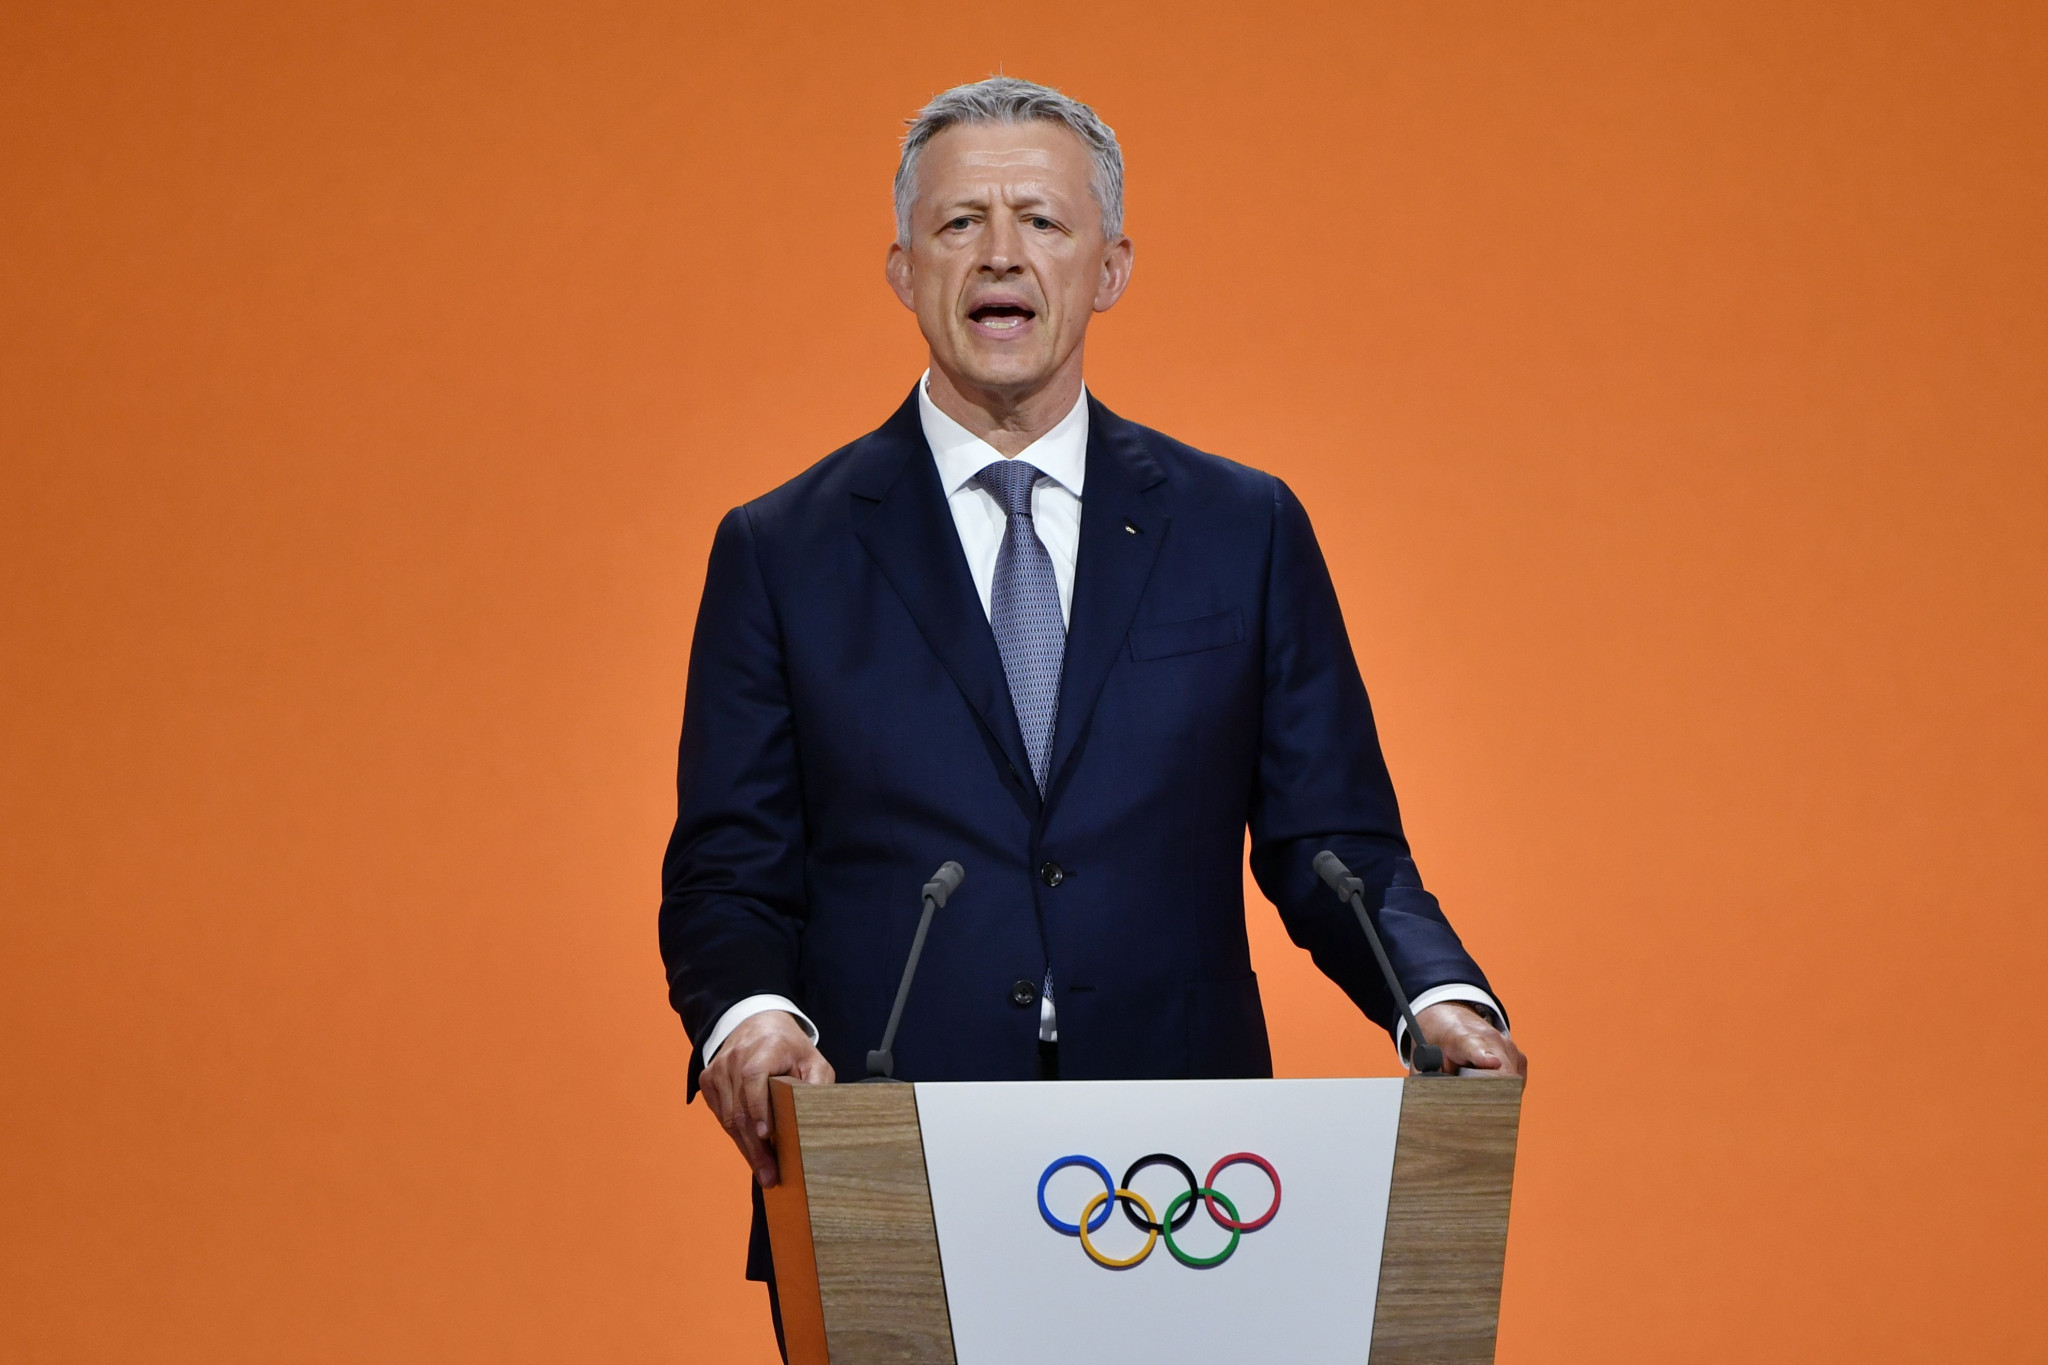 Octavian Morariu will chair the Winter Commission ©Getty Images